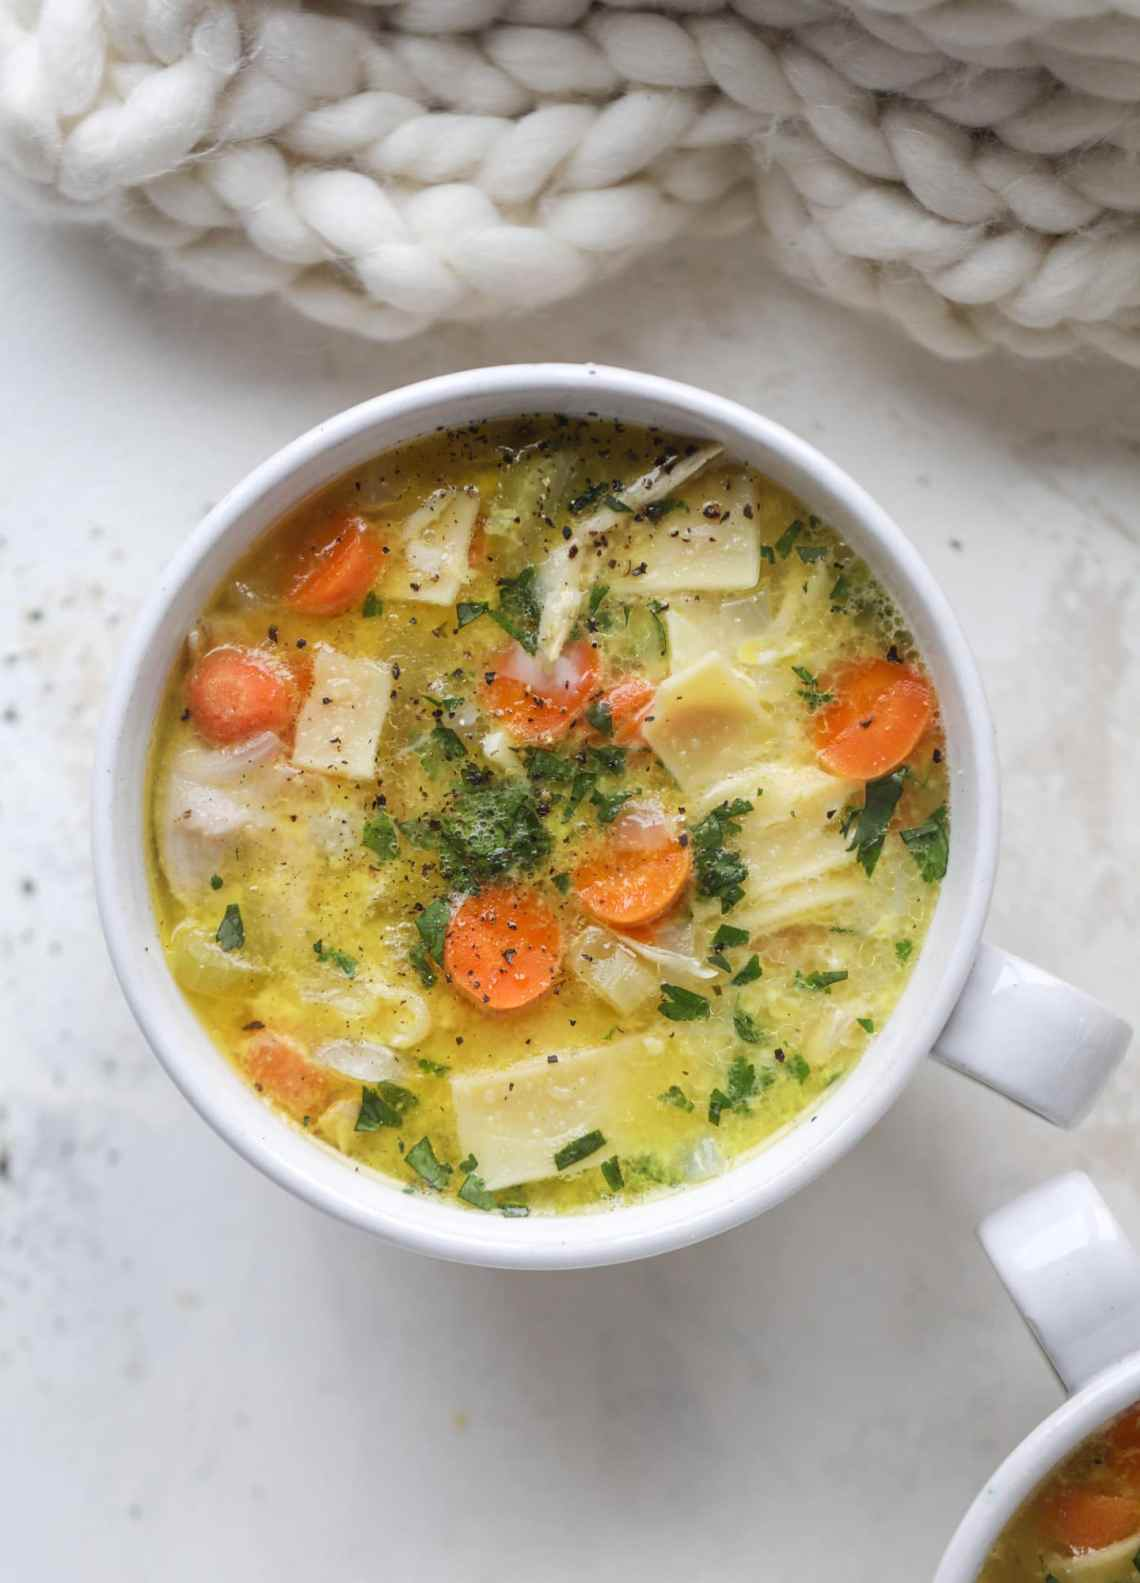 This chicken noodle egg drop soup is the ultimate comfort food! Homemade stock and satisfying ingredients provide the best nourishment and comfort! I howsweeteats.com #chicken #noodlesoup